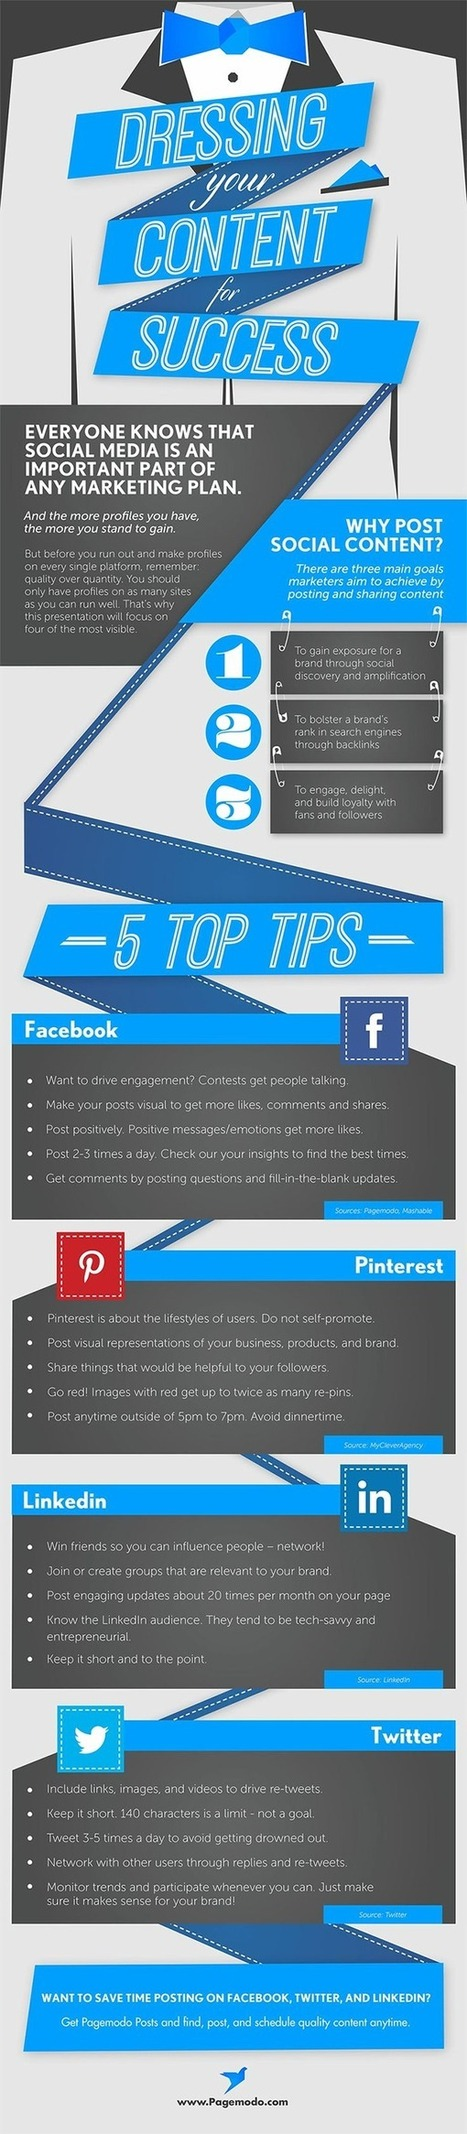 20 Tips to Boost Your Presence on the Big 4 Social Media Networks | Ecommerce | Scoop.it